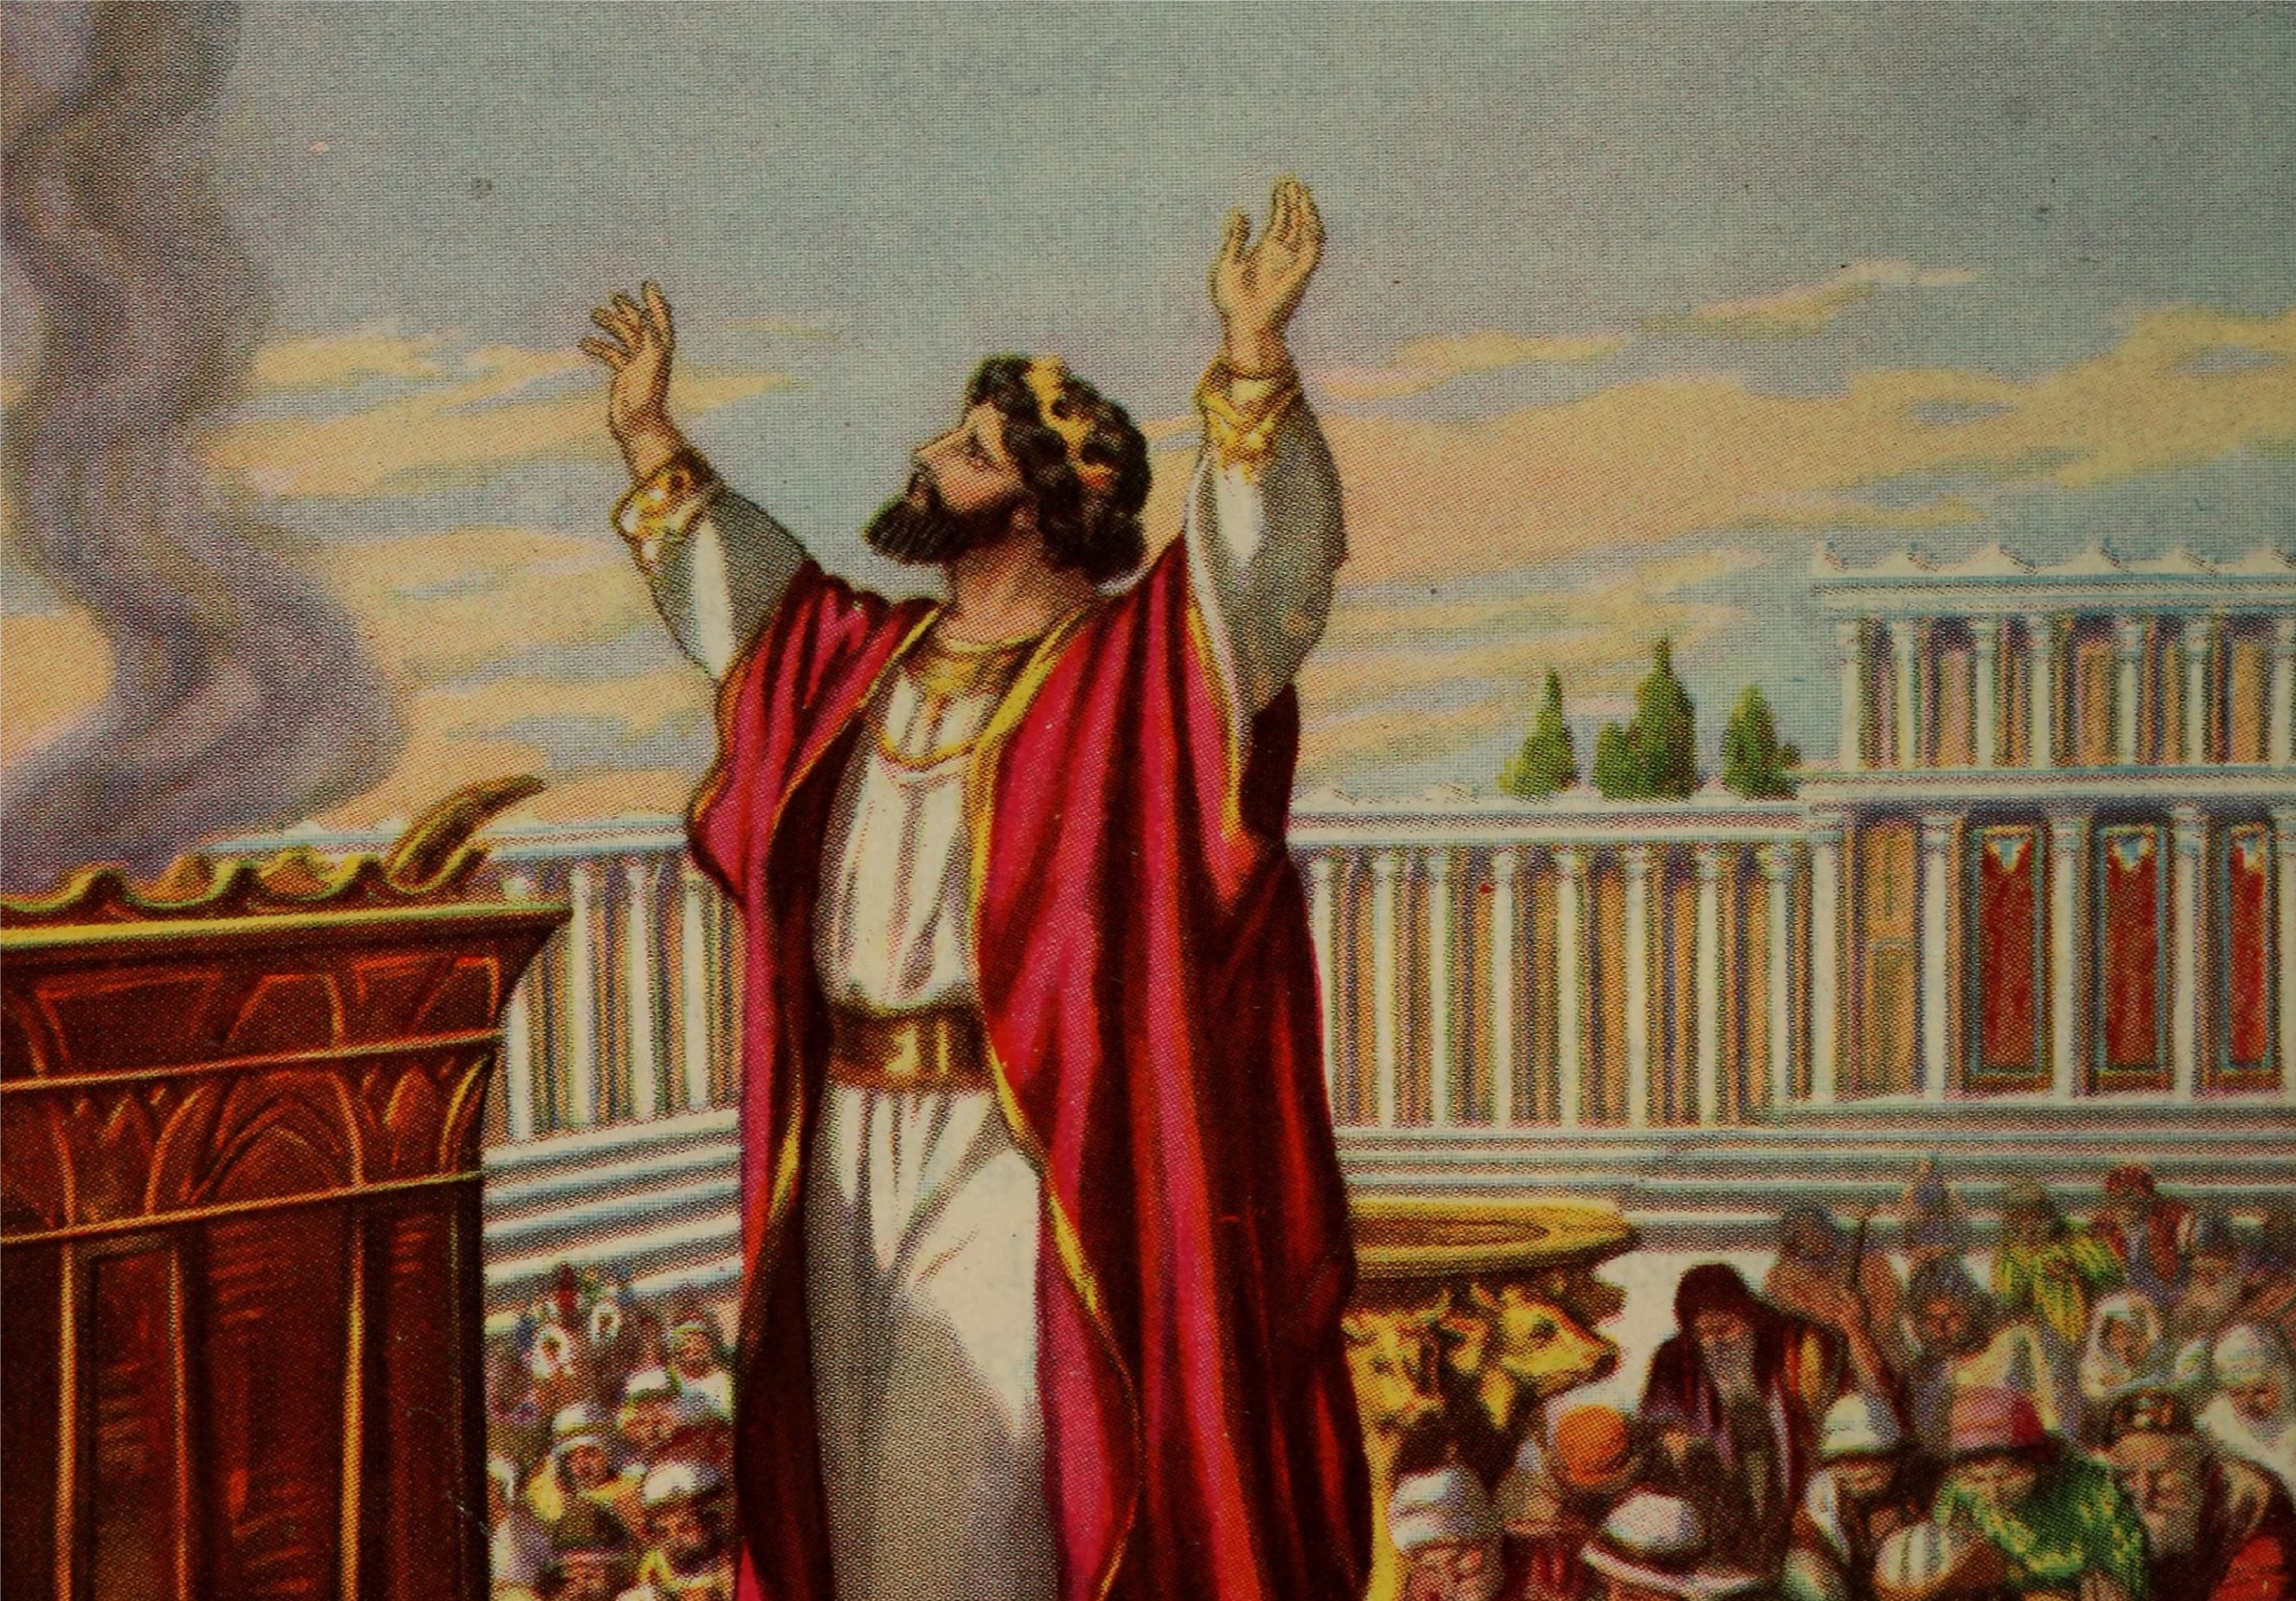 King Solomon praying and offering to God with his counsel